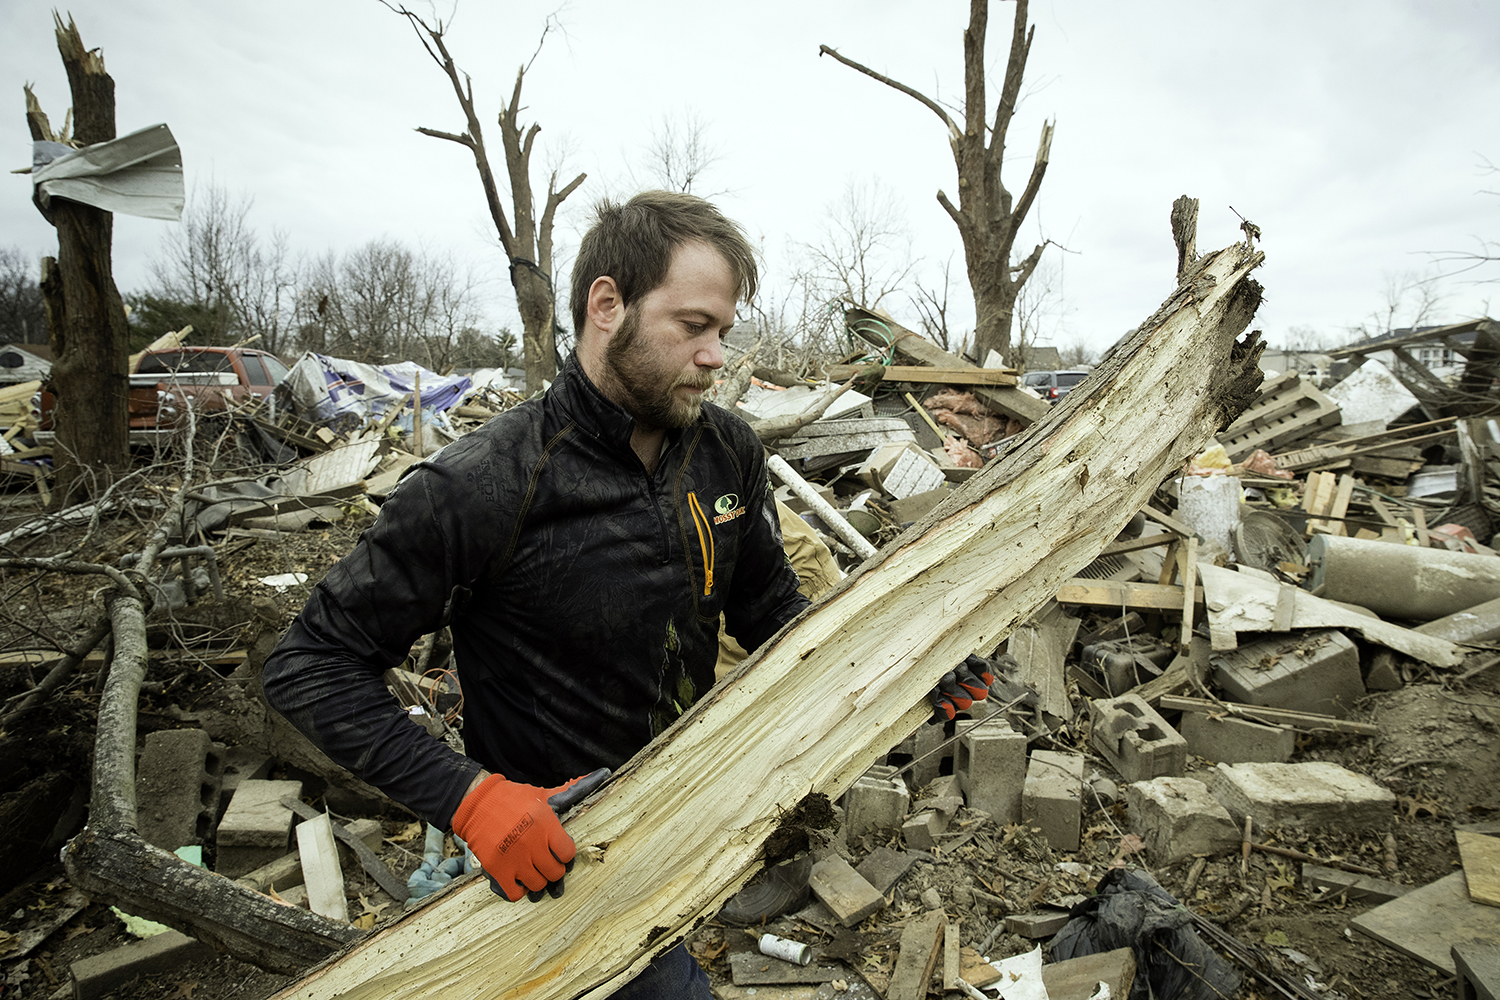 Steven Tirpak cleans debris from the remains of his two-story home in Taylorville Sunday, Dec. 2, 2018. Tirpak and his infant were not home when the storm struck. [Ted Schurter/The State Journal-Register]